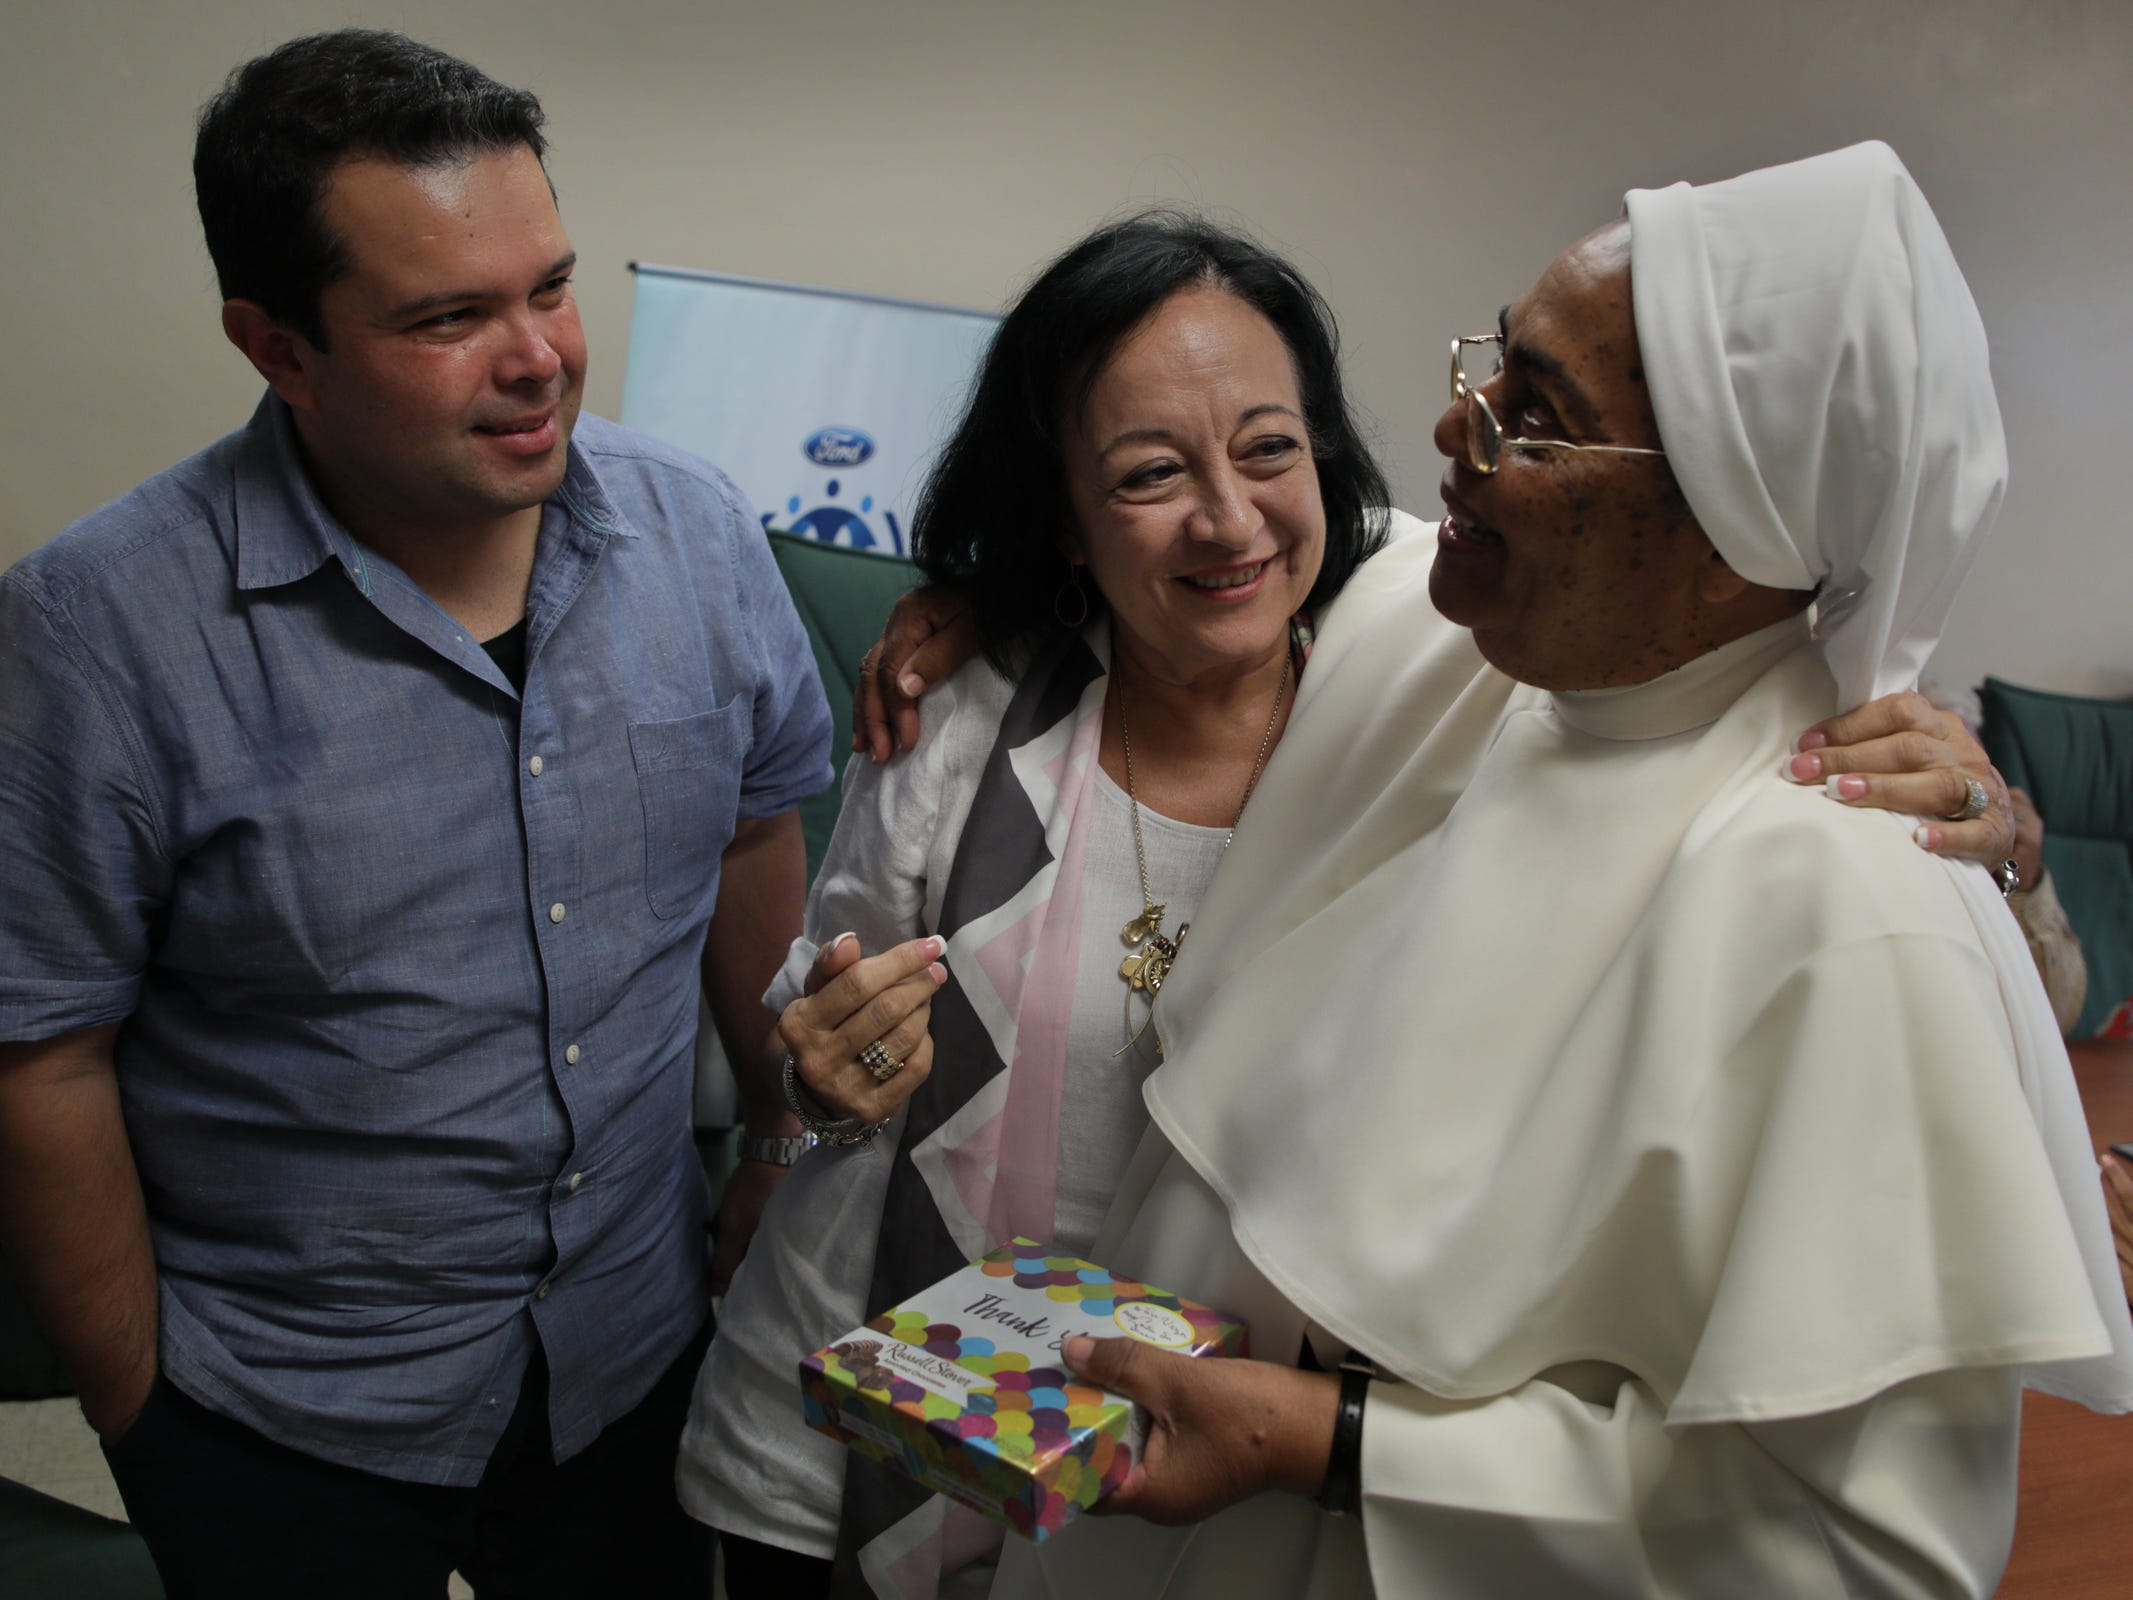 (l to r) Joe Avila and Gloria Rodriguez of the Ford Fund share a moment together with sister Virgenmina Morell, 75, at Centros Sor Isolina Ferré in Ponce in Puerto Rico.